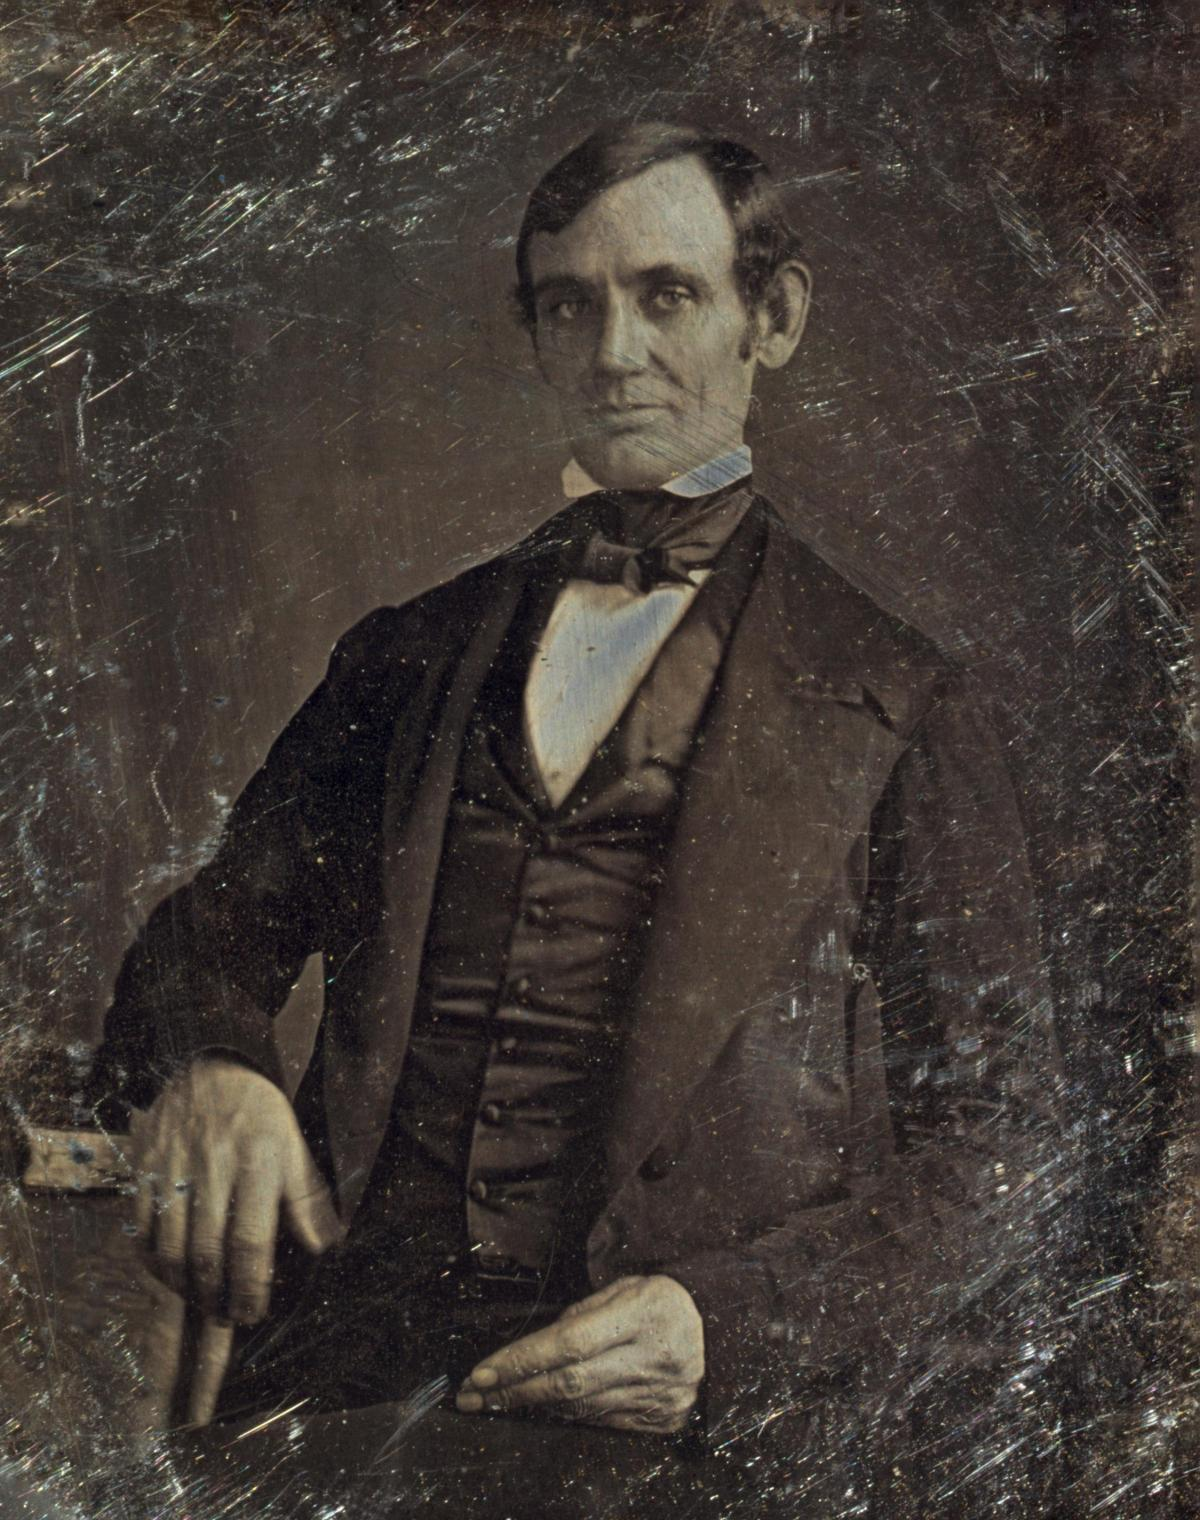 """""""Died of the Spotted Fever"""": The Spot Resolutions and the Making of Abraham Lincoln"""